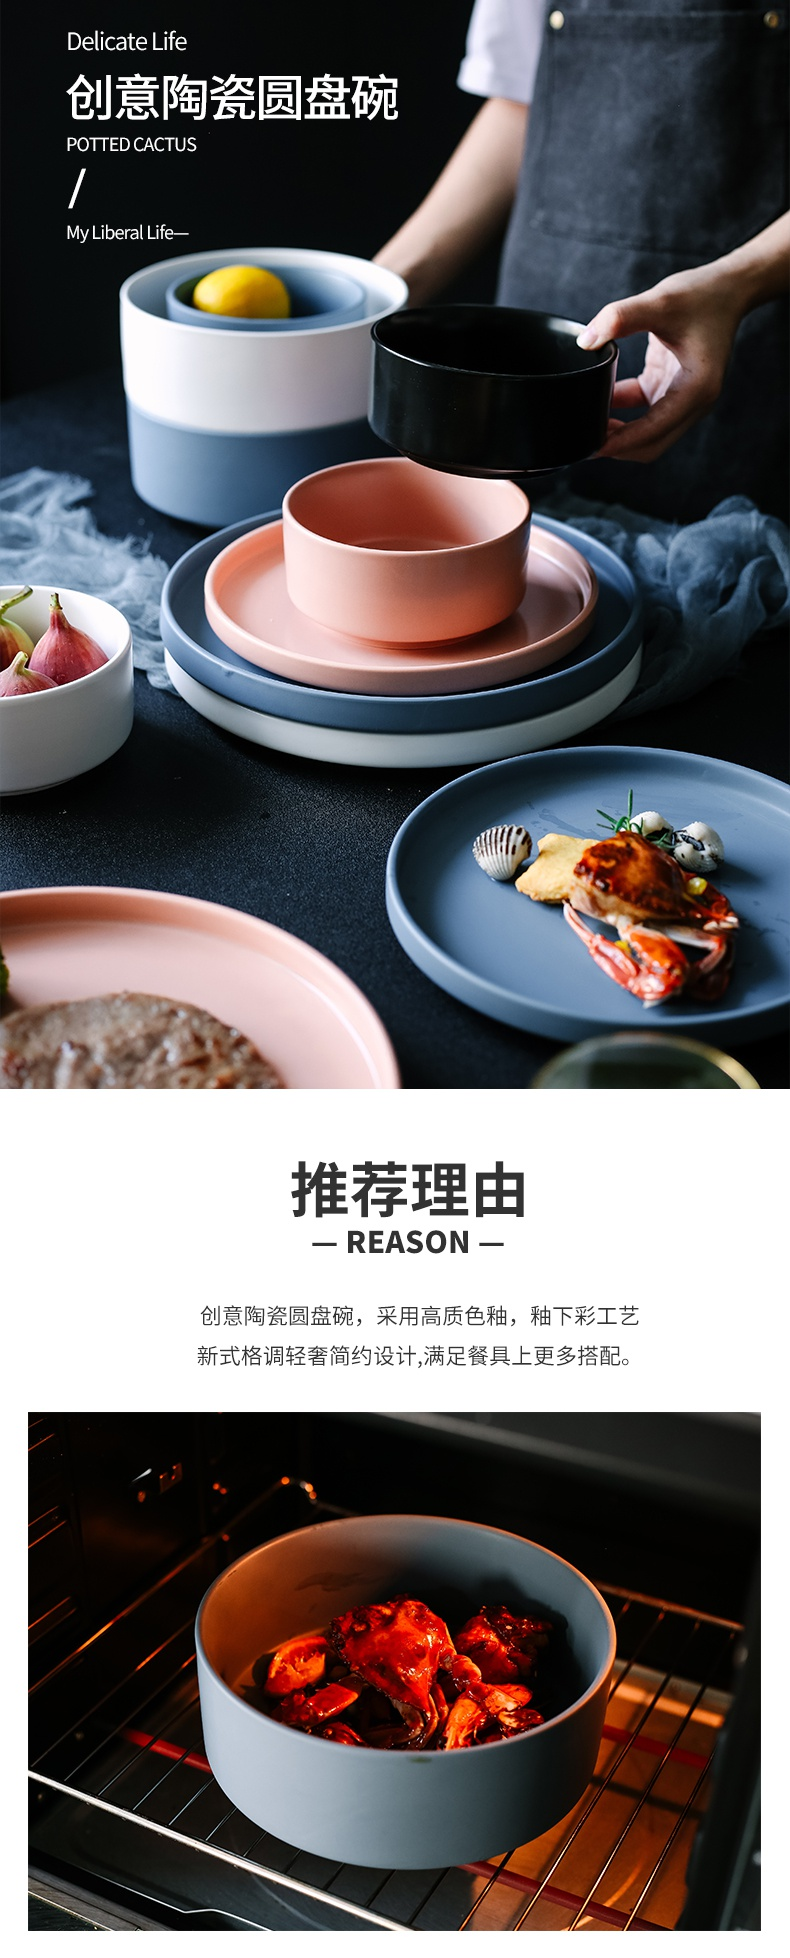 Nordic ceramic household beefsteak, knife and fork dish rice bowls creativity network red tableware plate round breakfast dishes